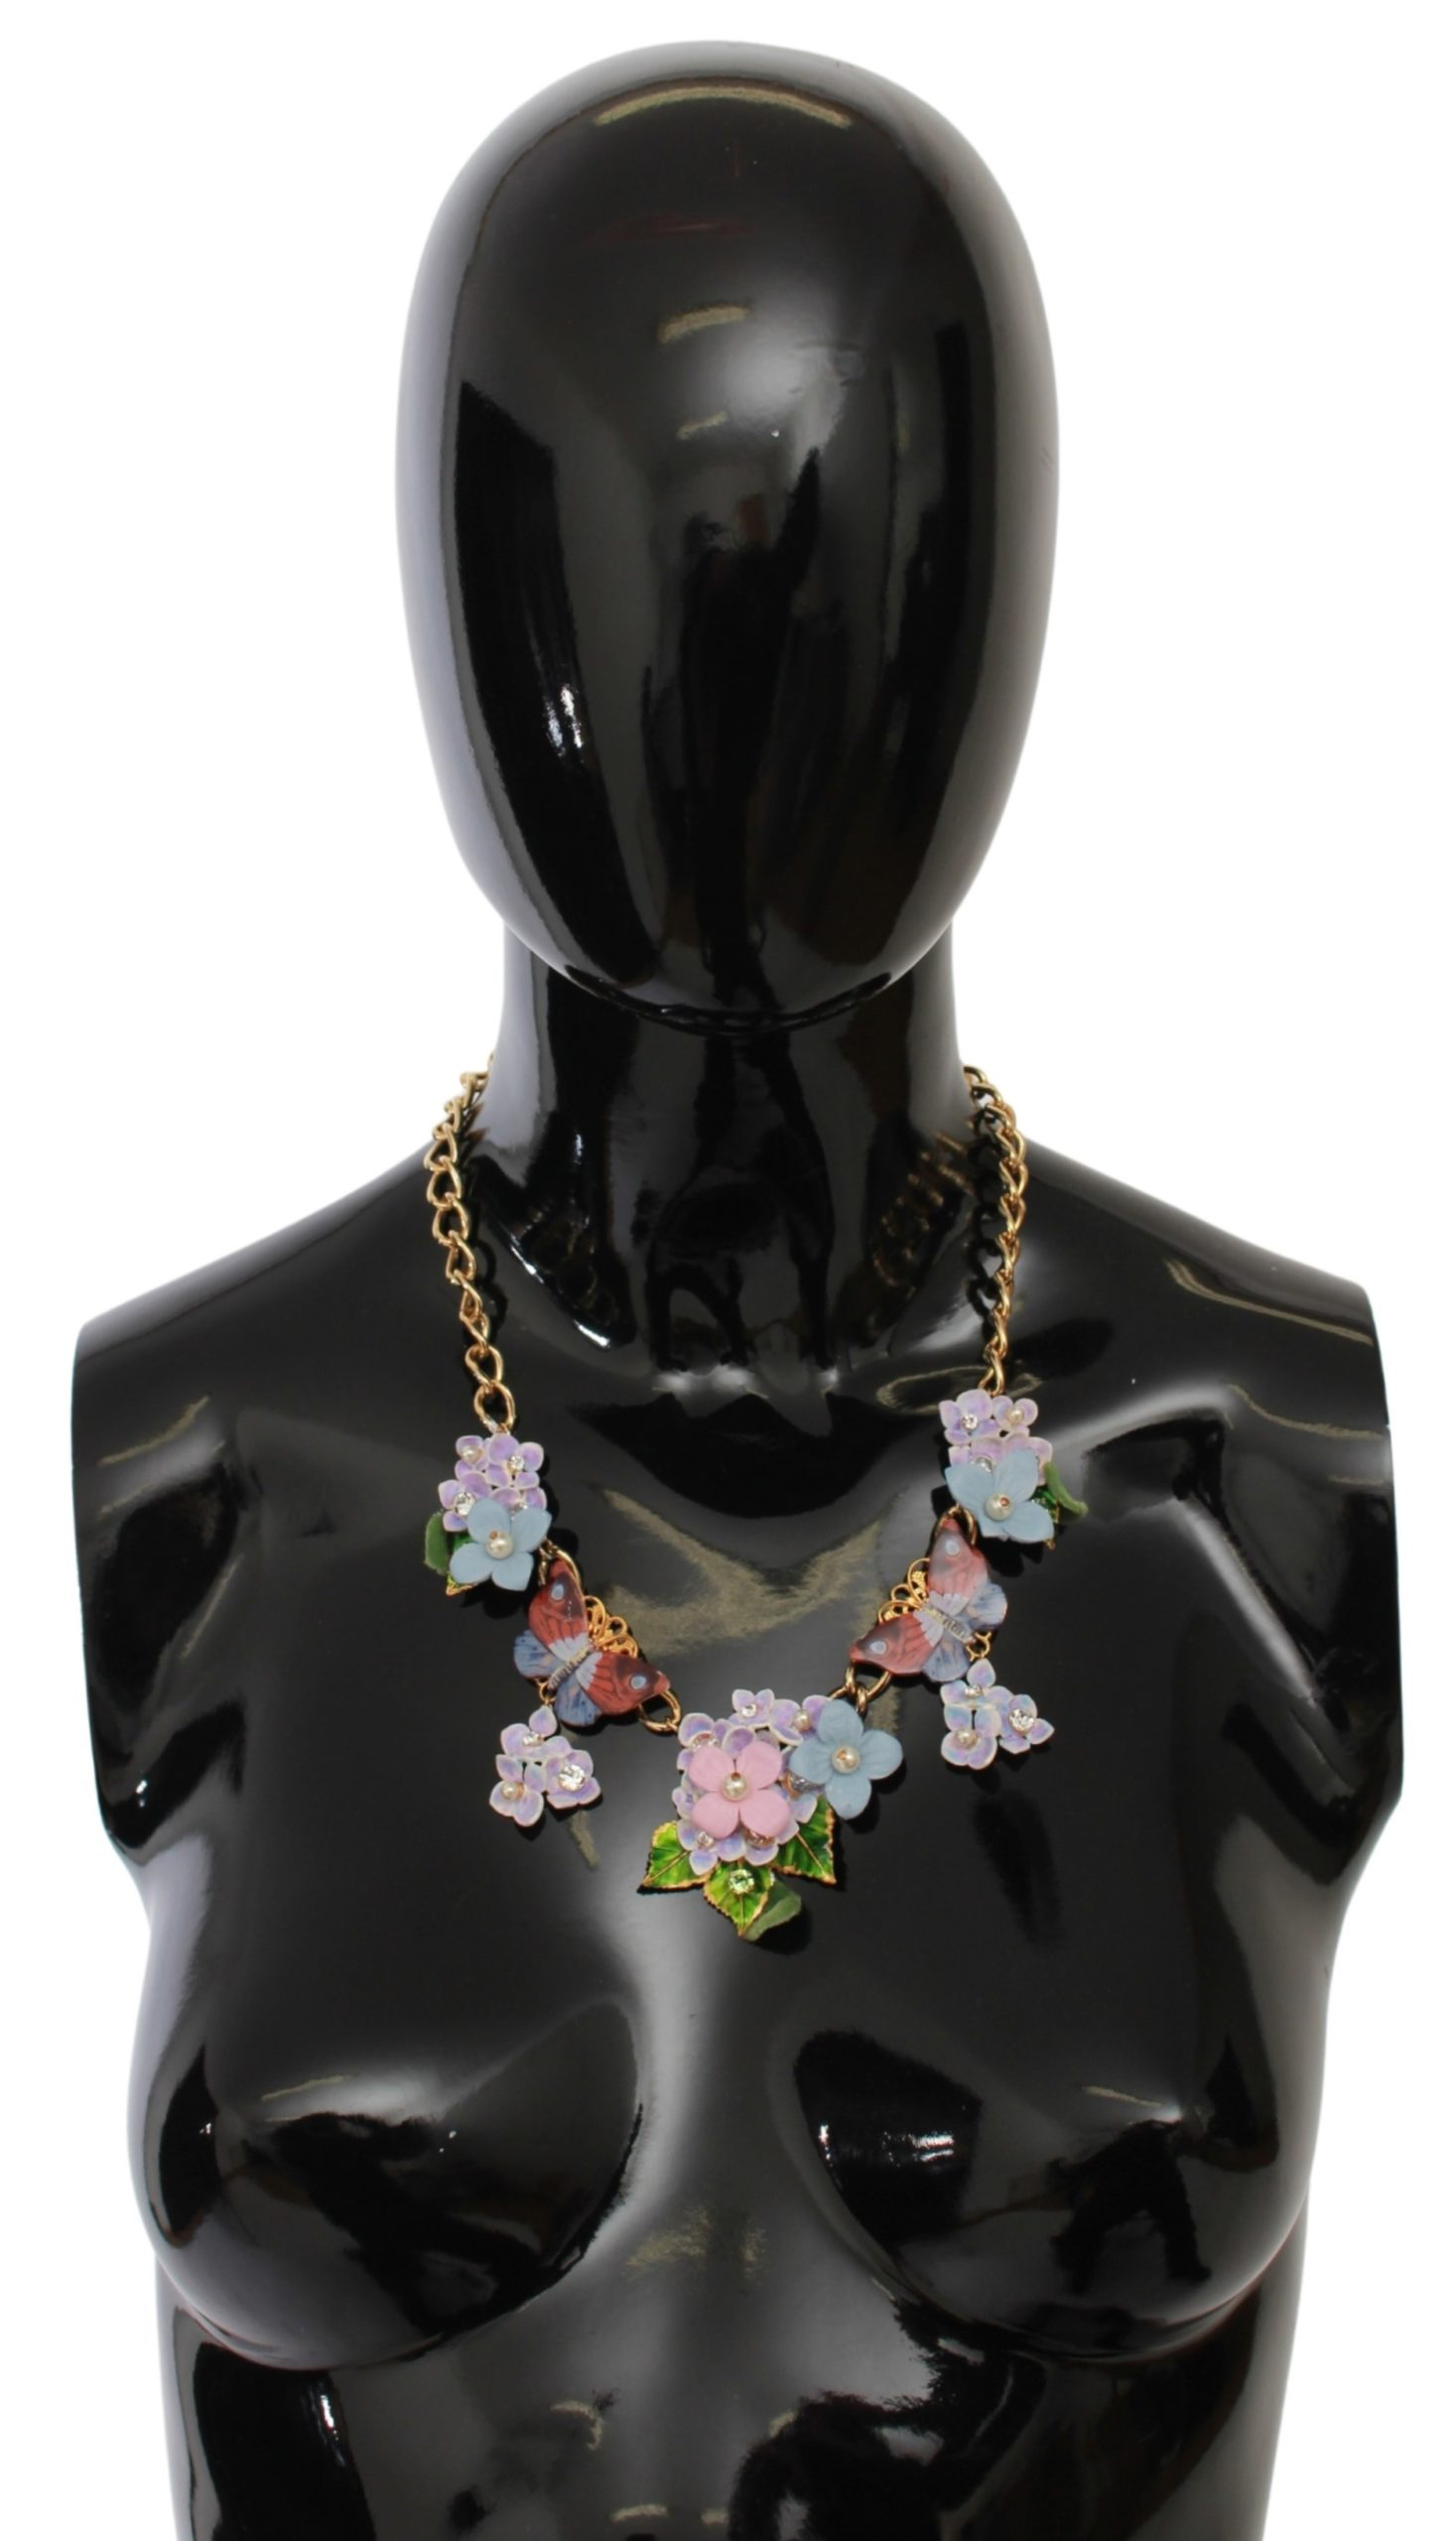 Dolce & Gabbana Women's Crystal Ortensia Floral Butterfly Chain Necklace Gold SMY7099